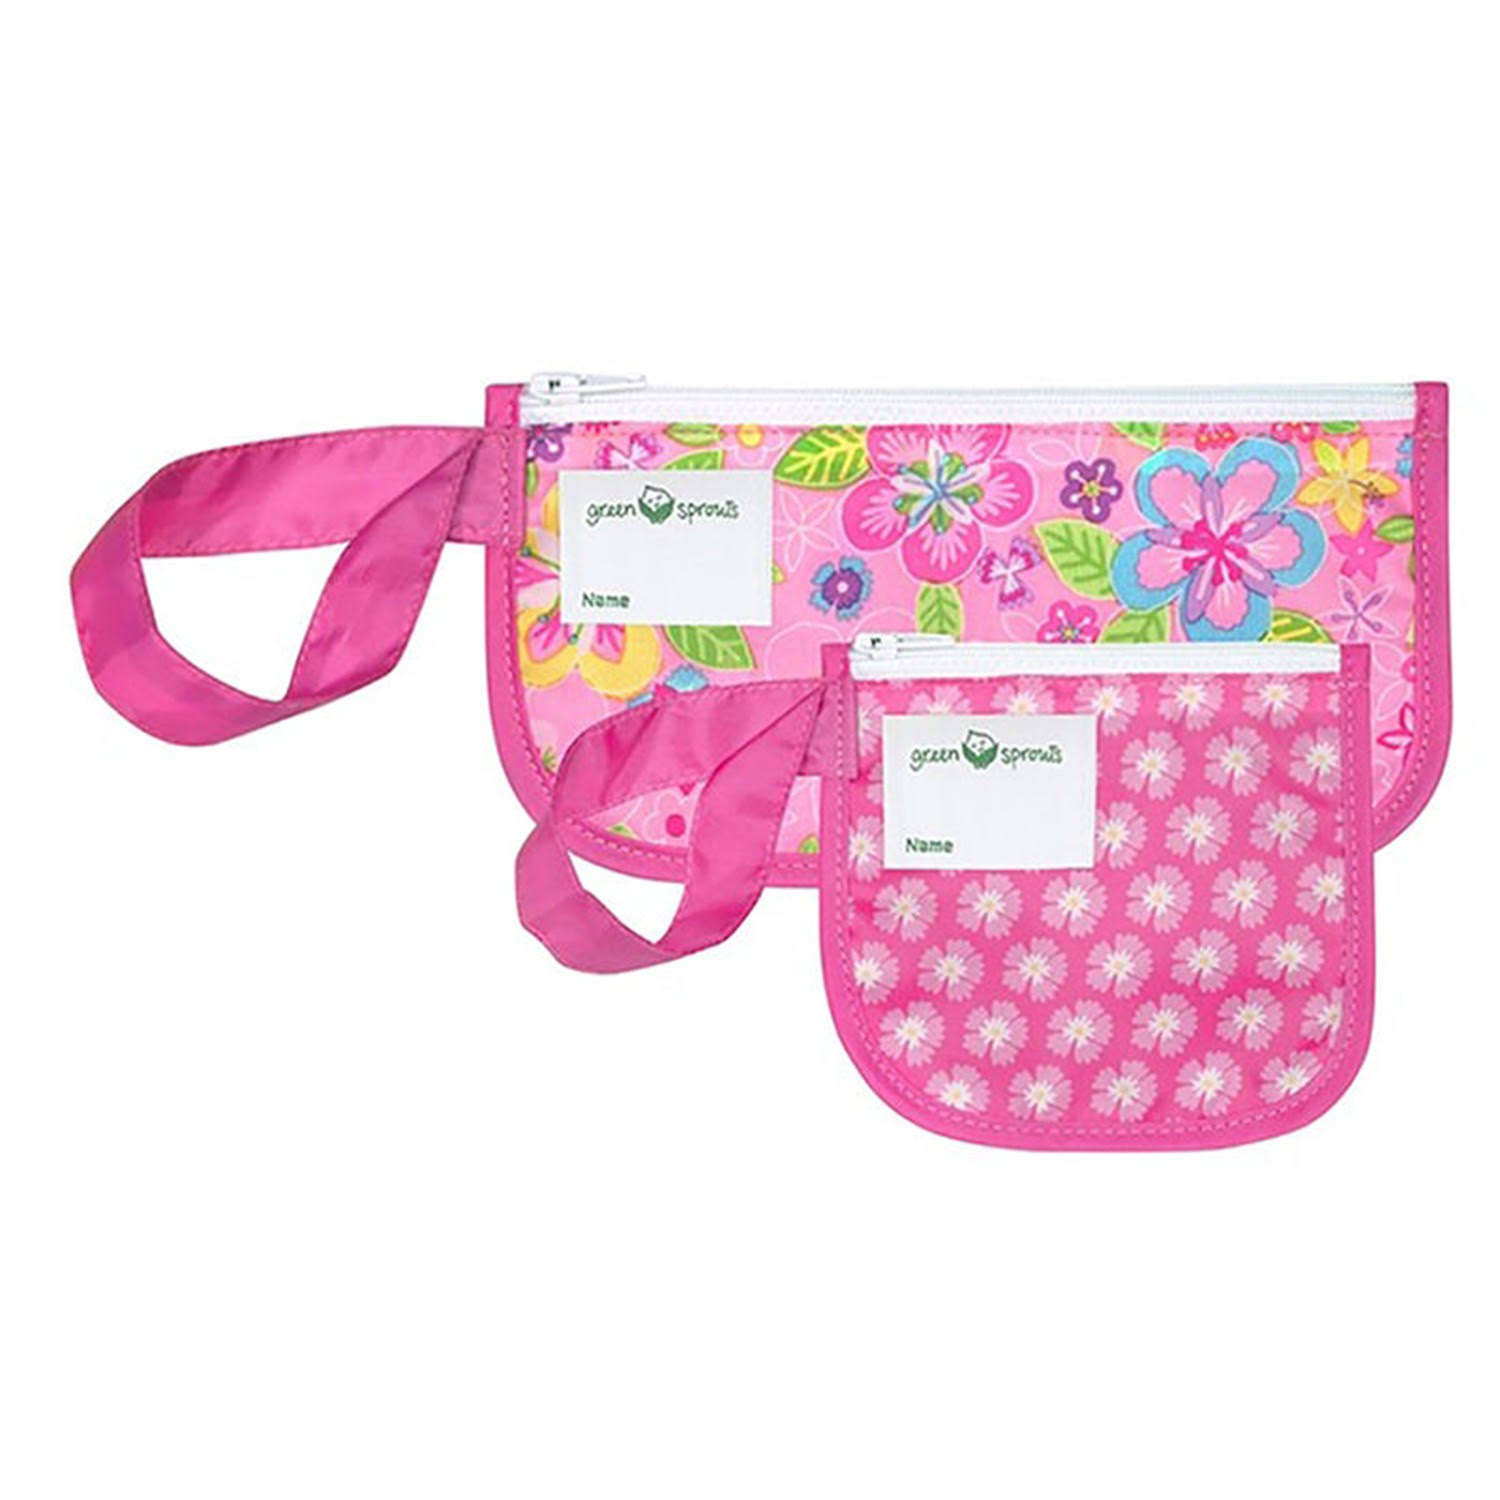 Green Sprouts 2-Pack Floral Reusable Snack Bags in Pink